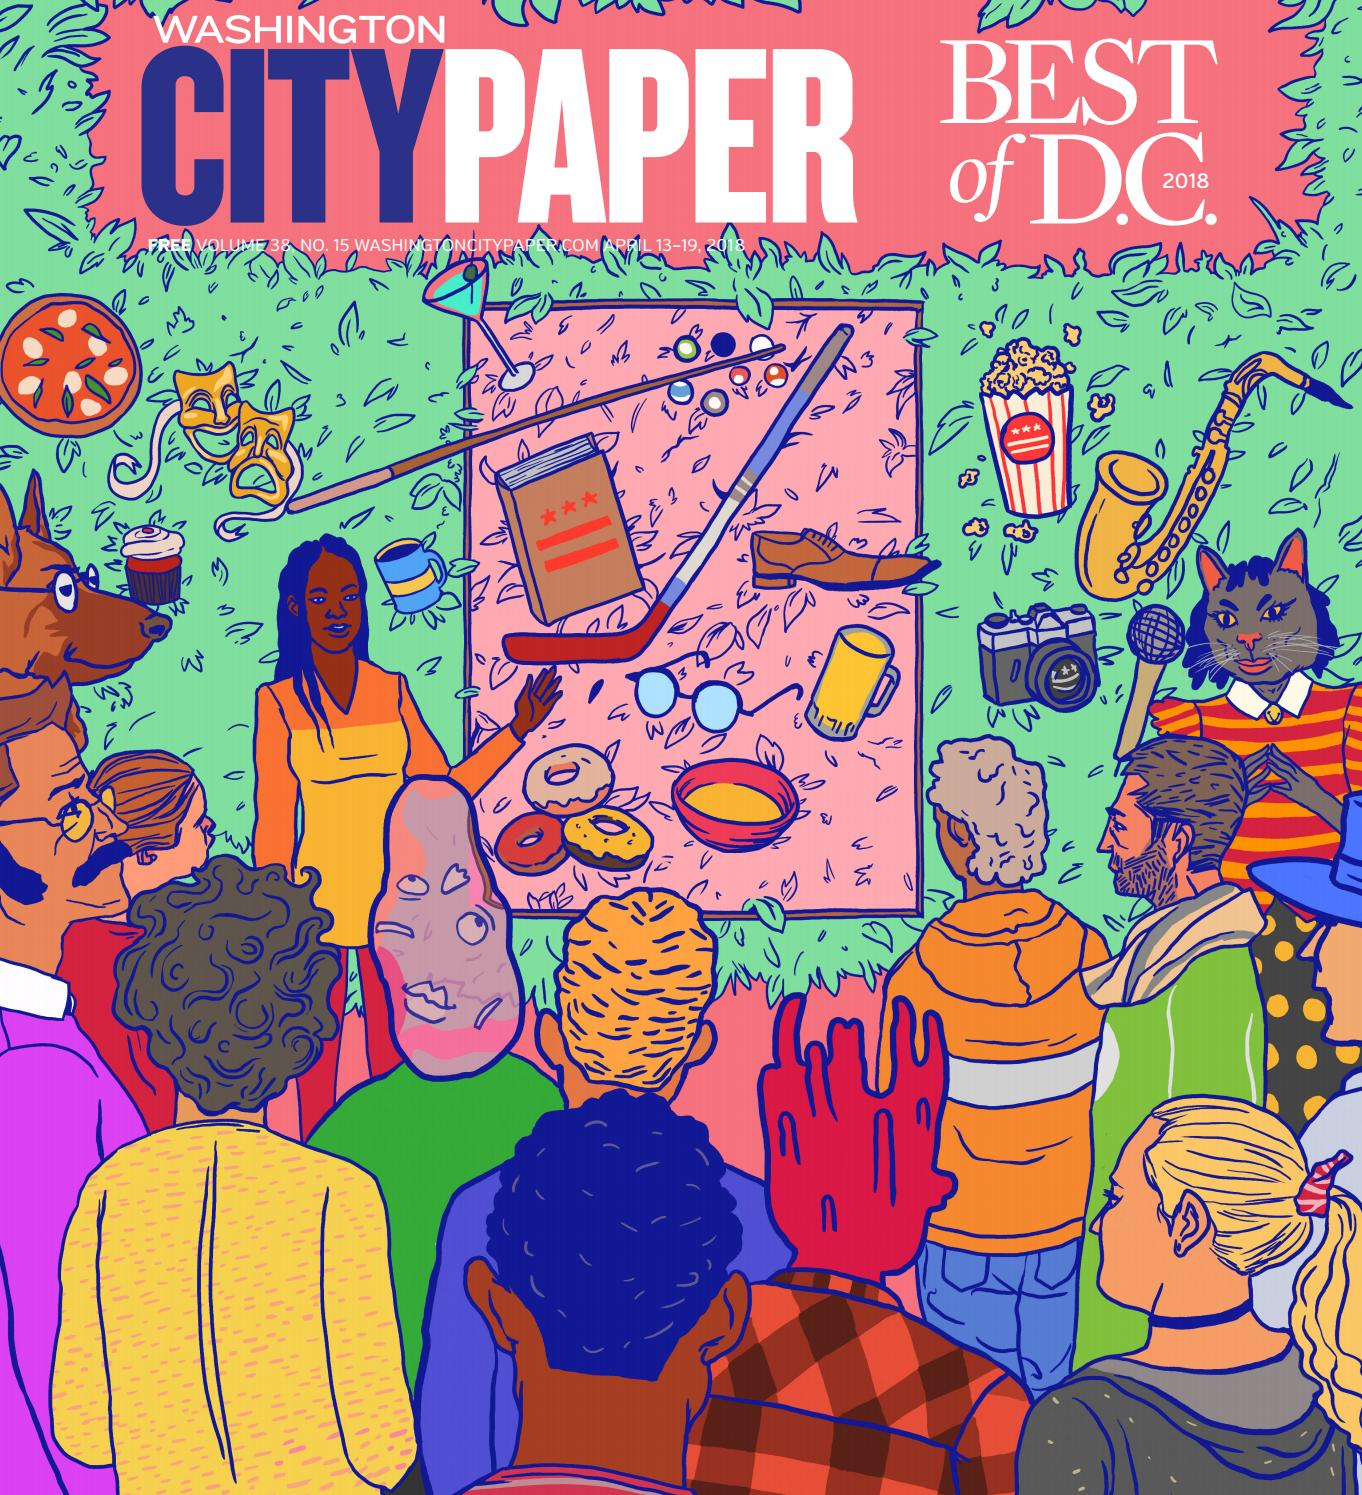 ce9e980f5 Washington City Paper (April 13, 2018) by Washington City Paper - issuu